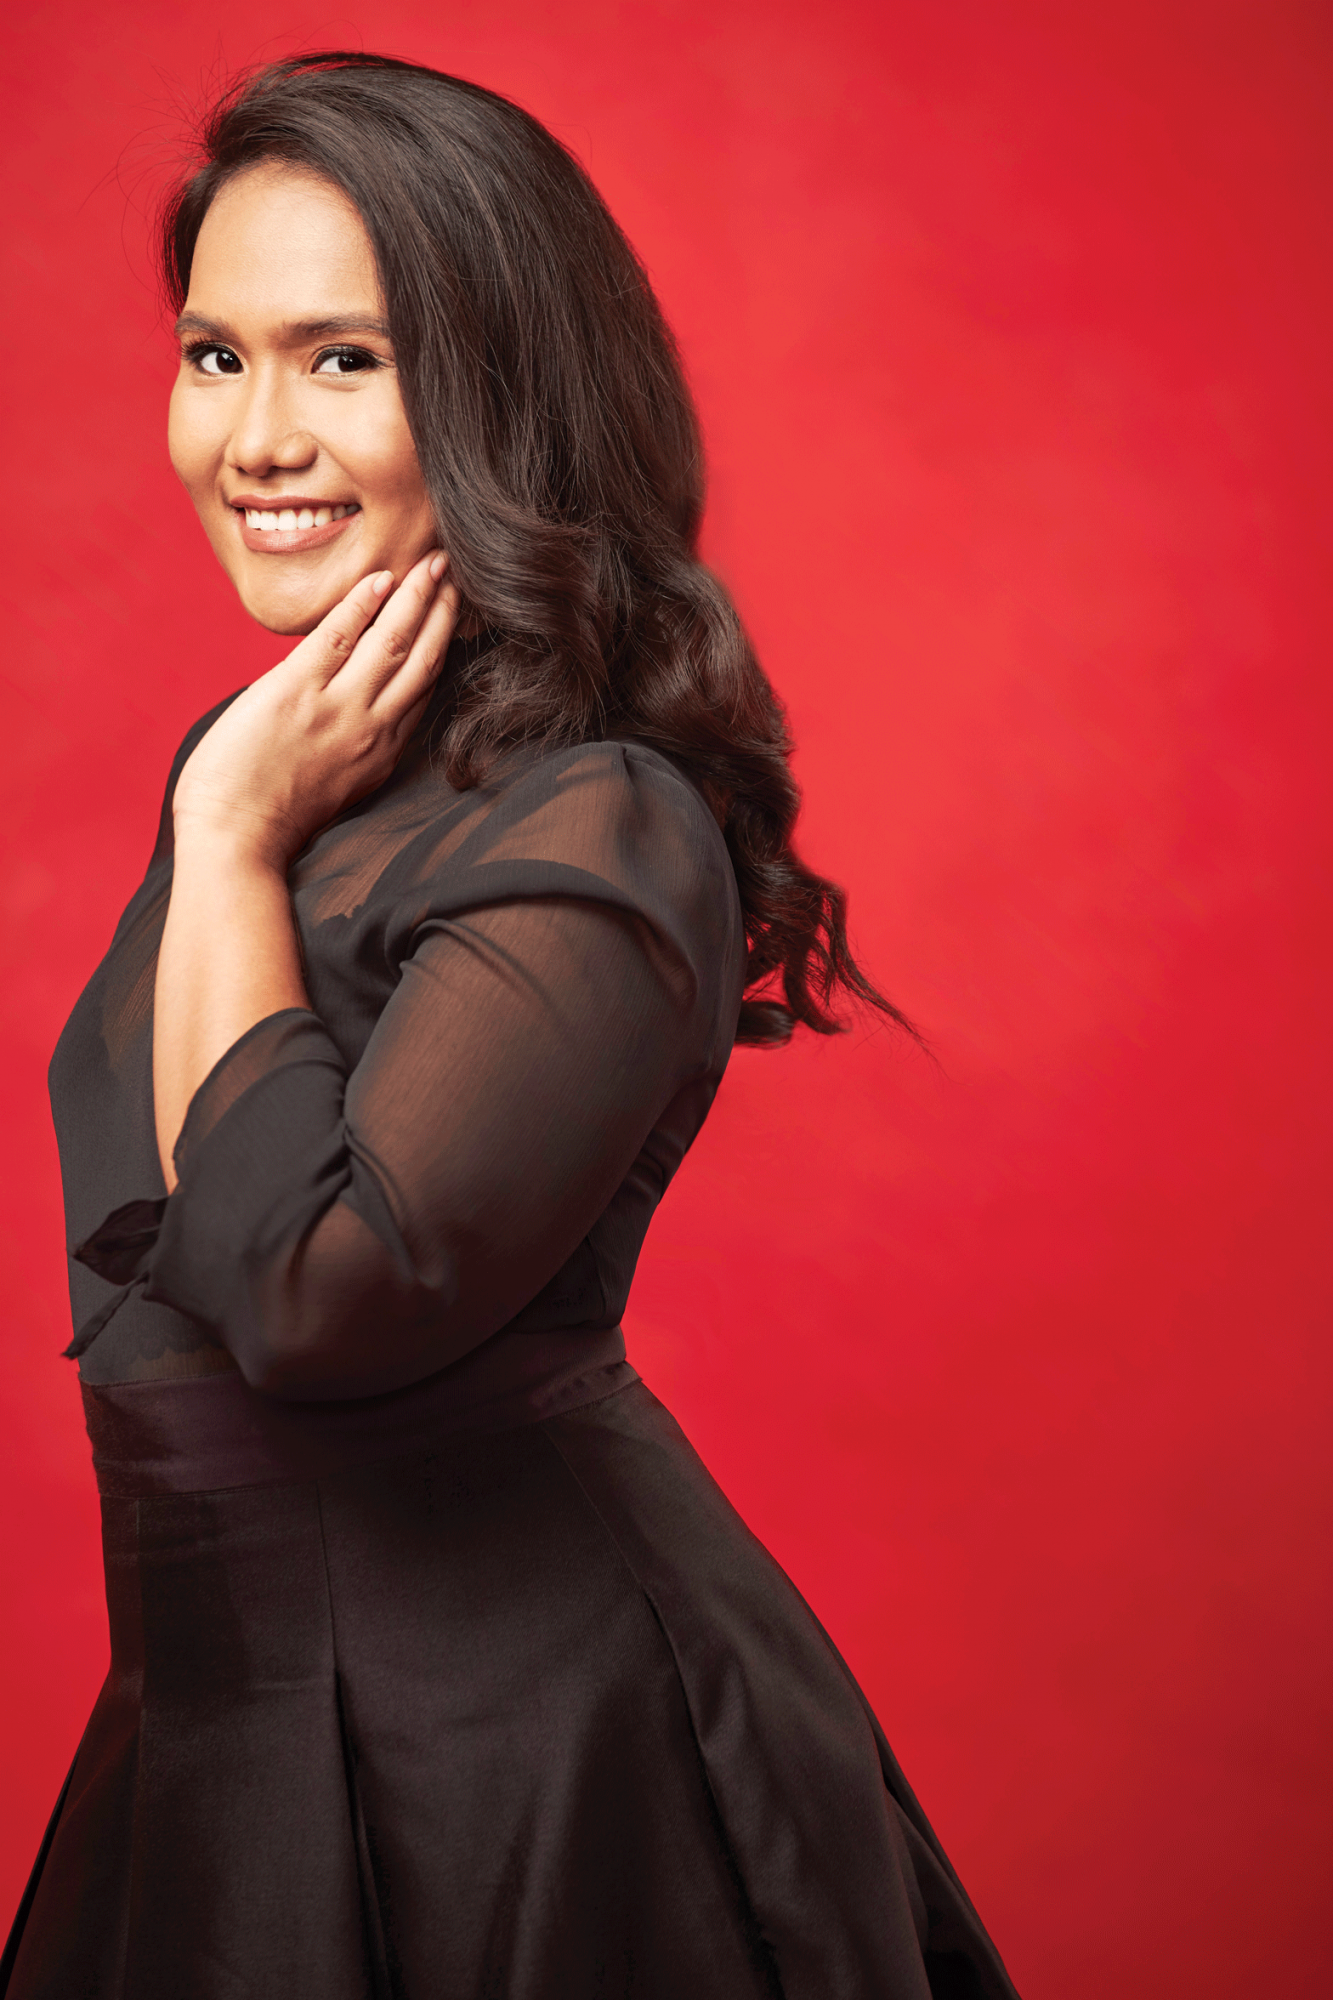 What Matters To Me: Cherrie Atilano, Founder Of Agrea Philippines